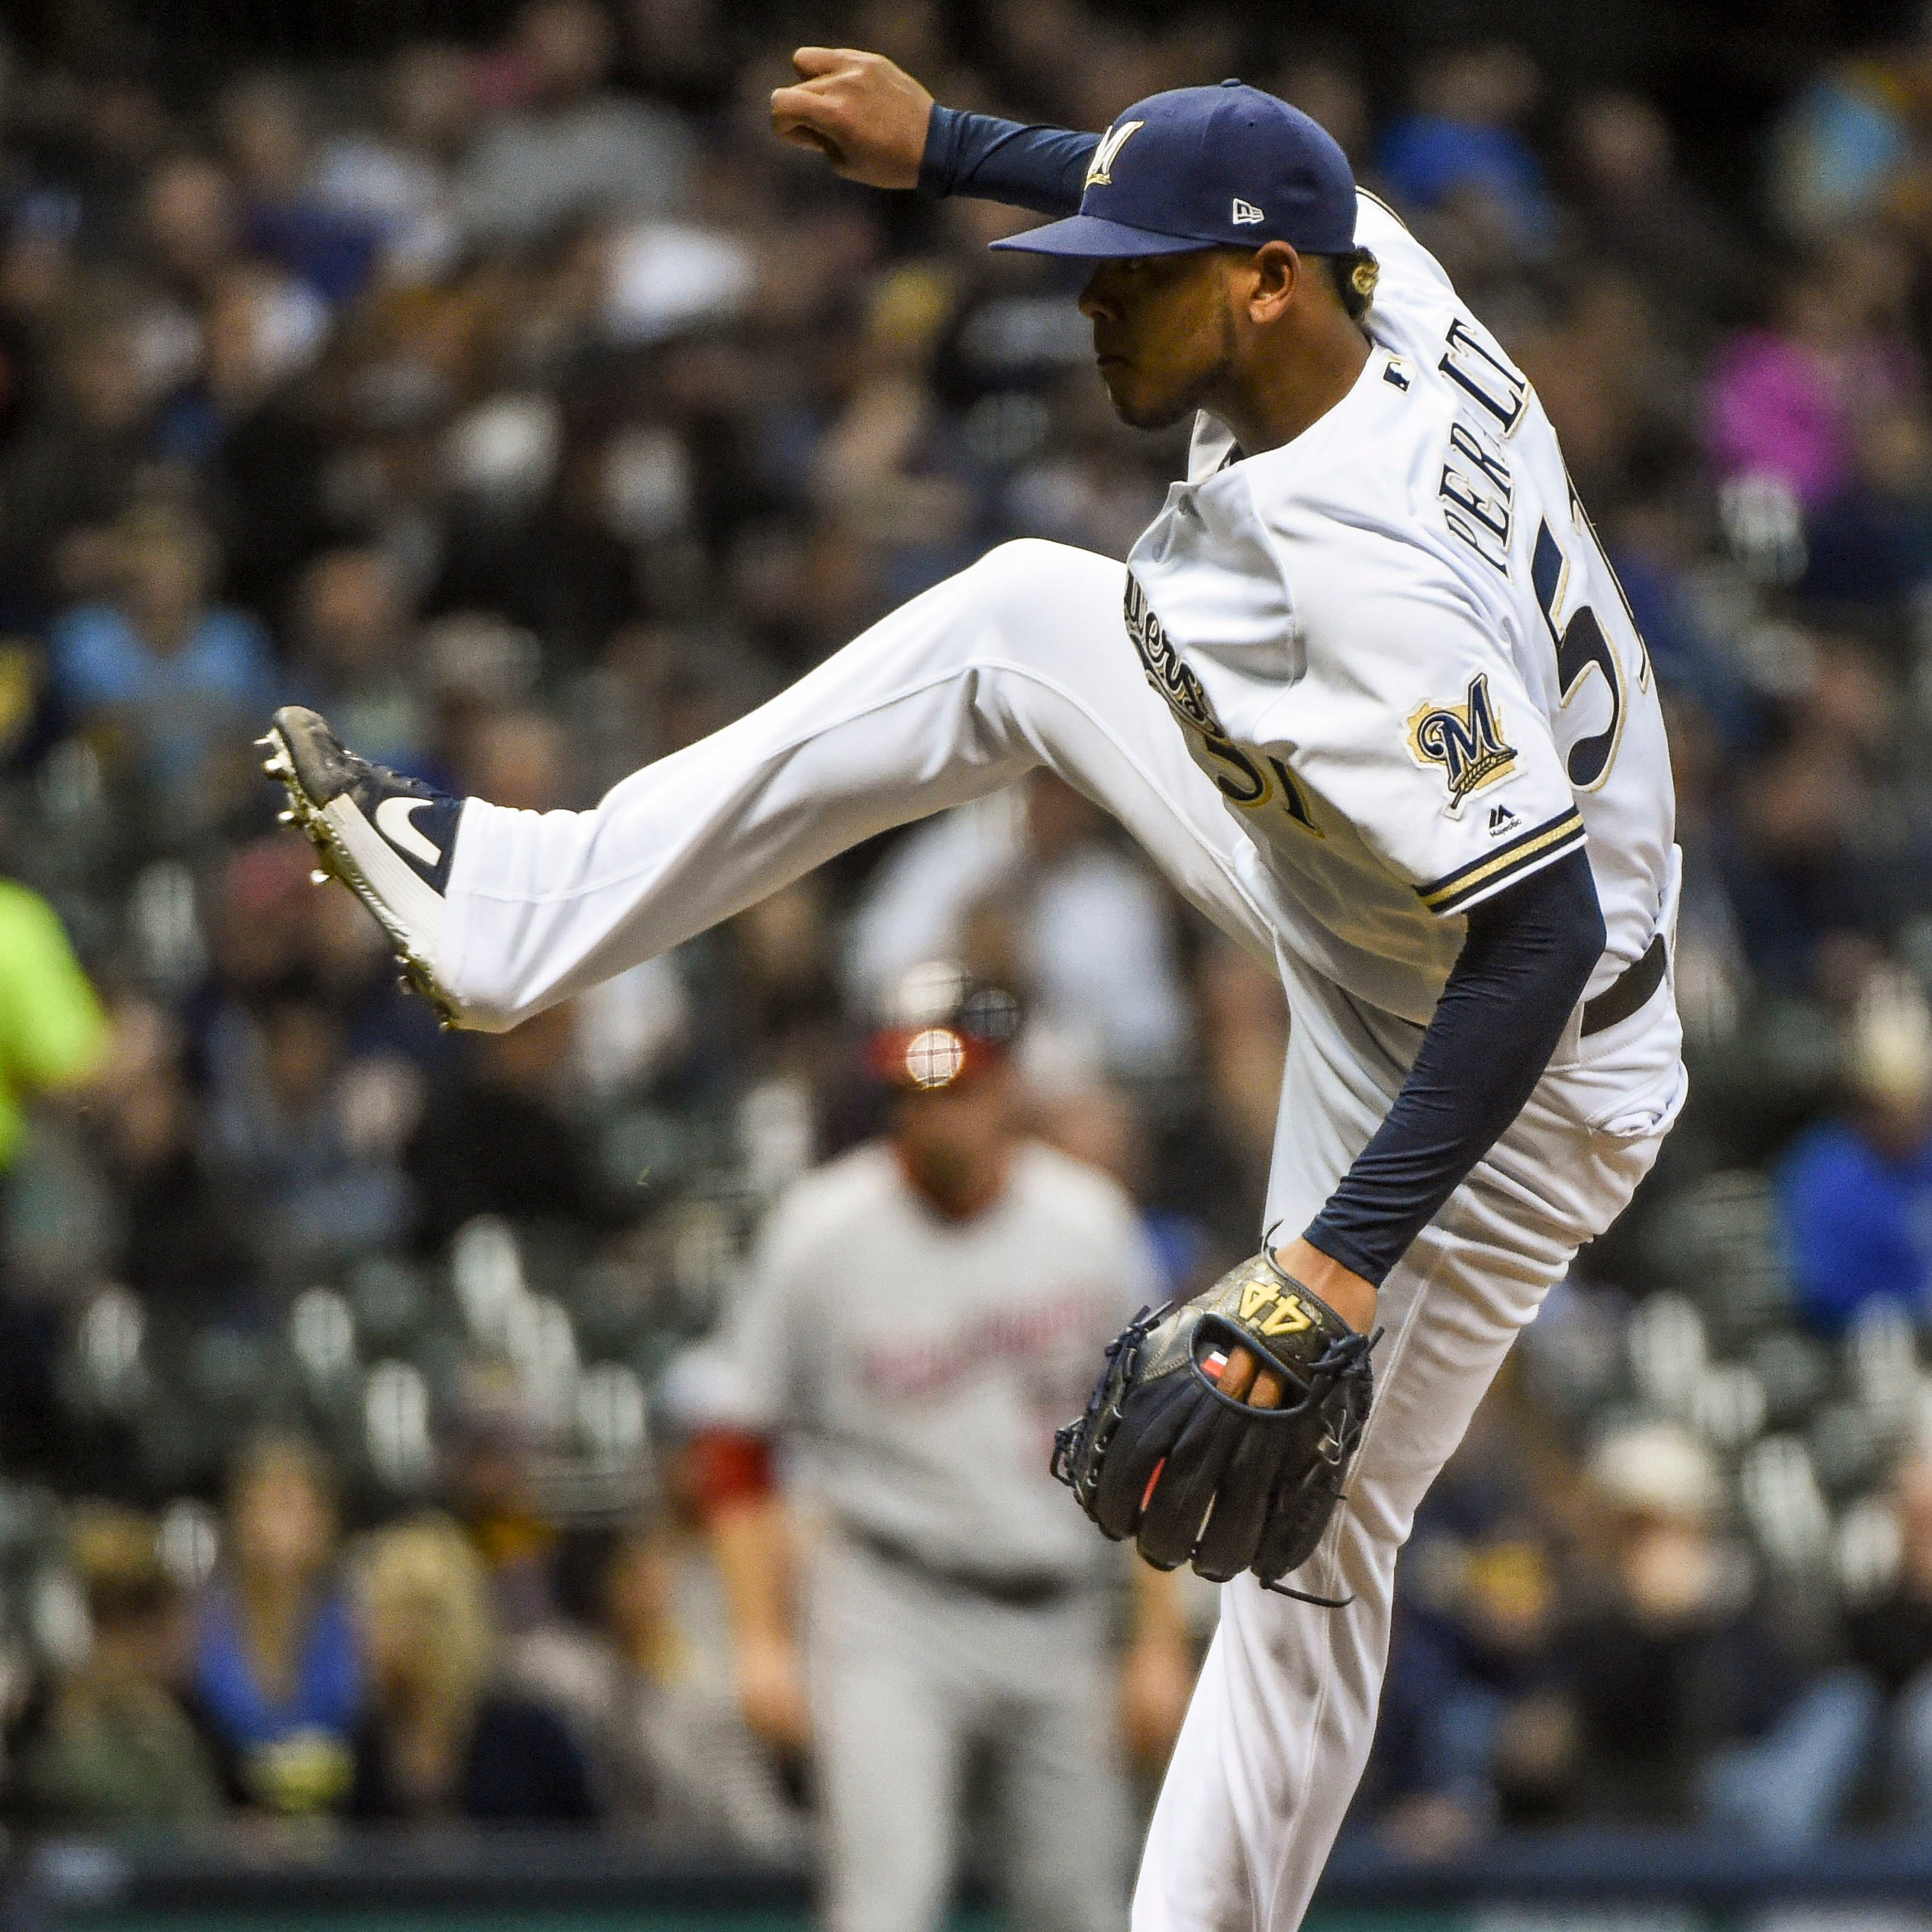 Brewers 6, Nationals 0: Adrian Houser, Freddy Peralta provide solid 1-2 punch